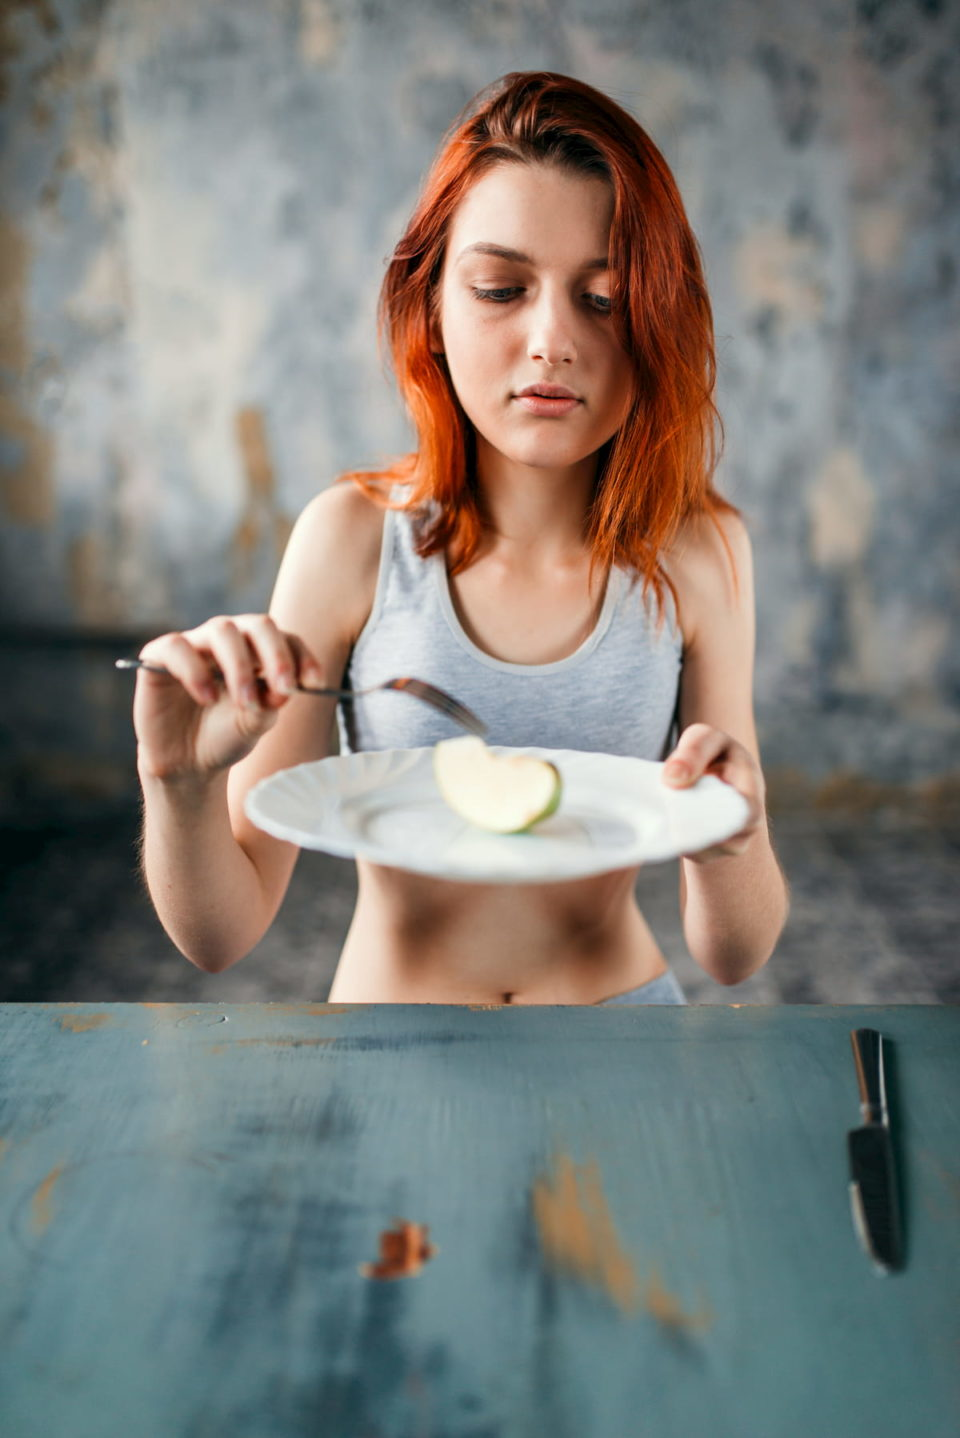 Anorexia problem in female